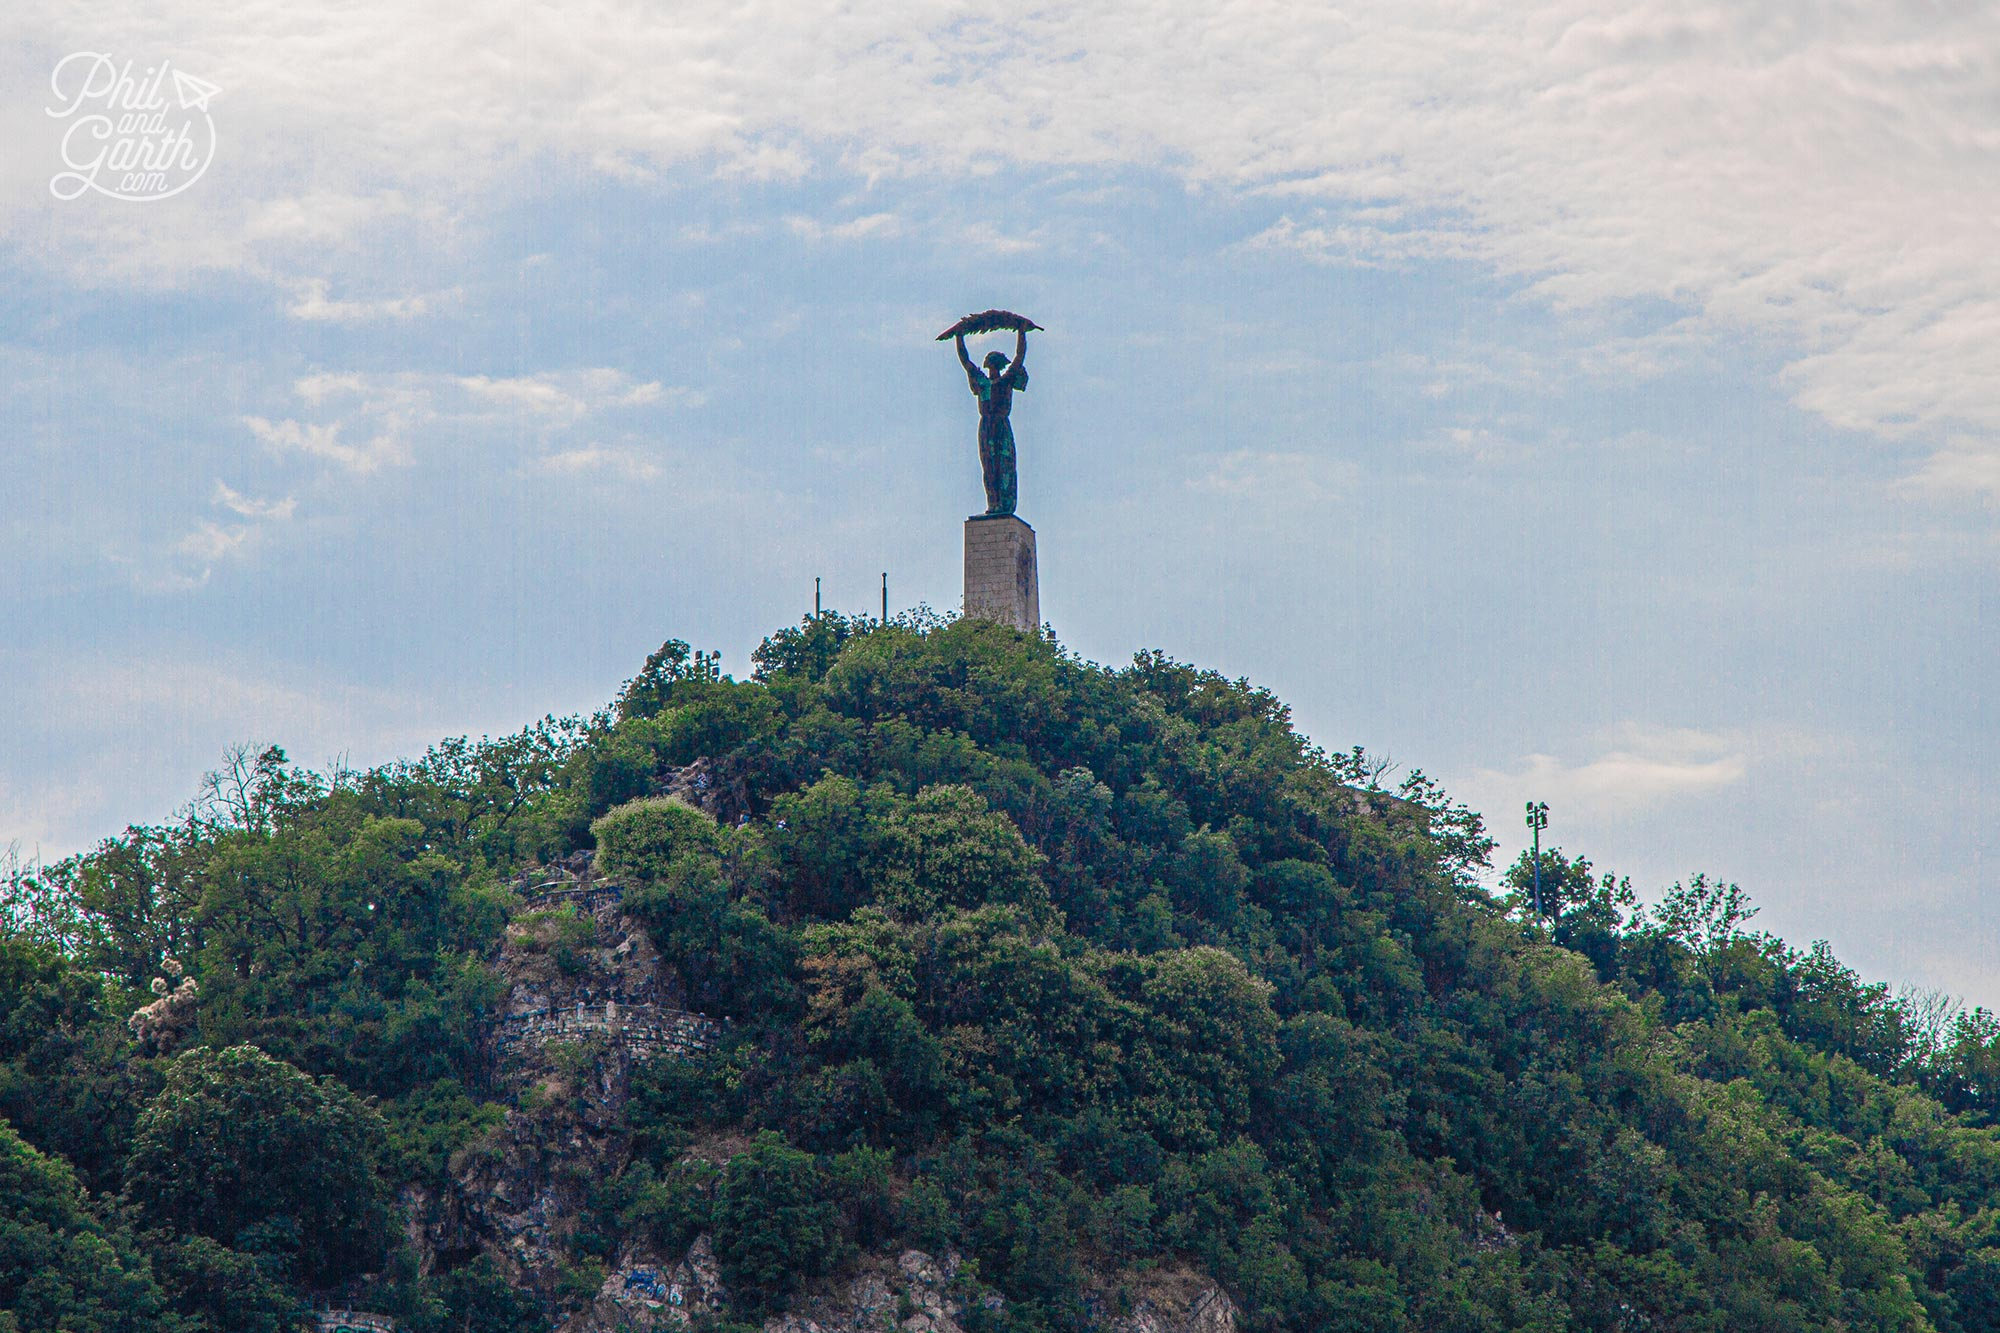 Budapest's 'Statue of Liberty' stands up high on Gellert Hill - Budapest In 2 Days